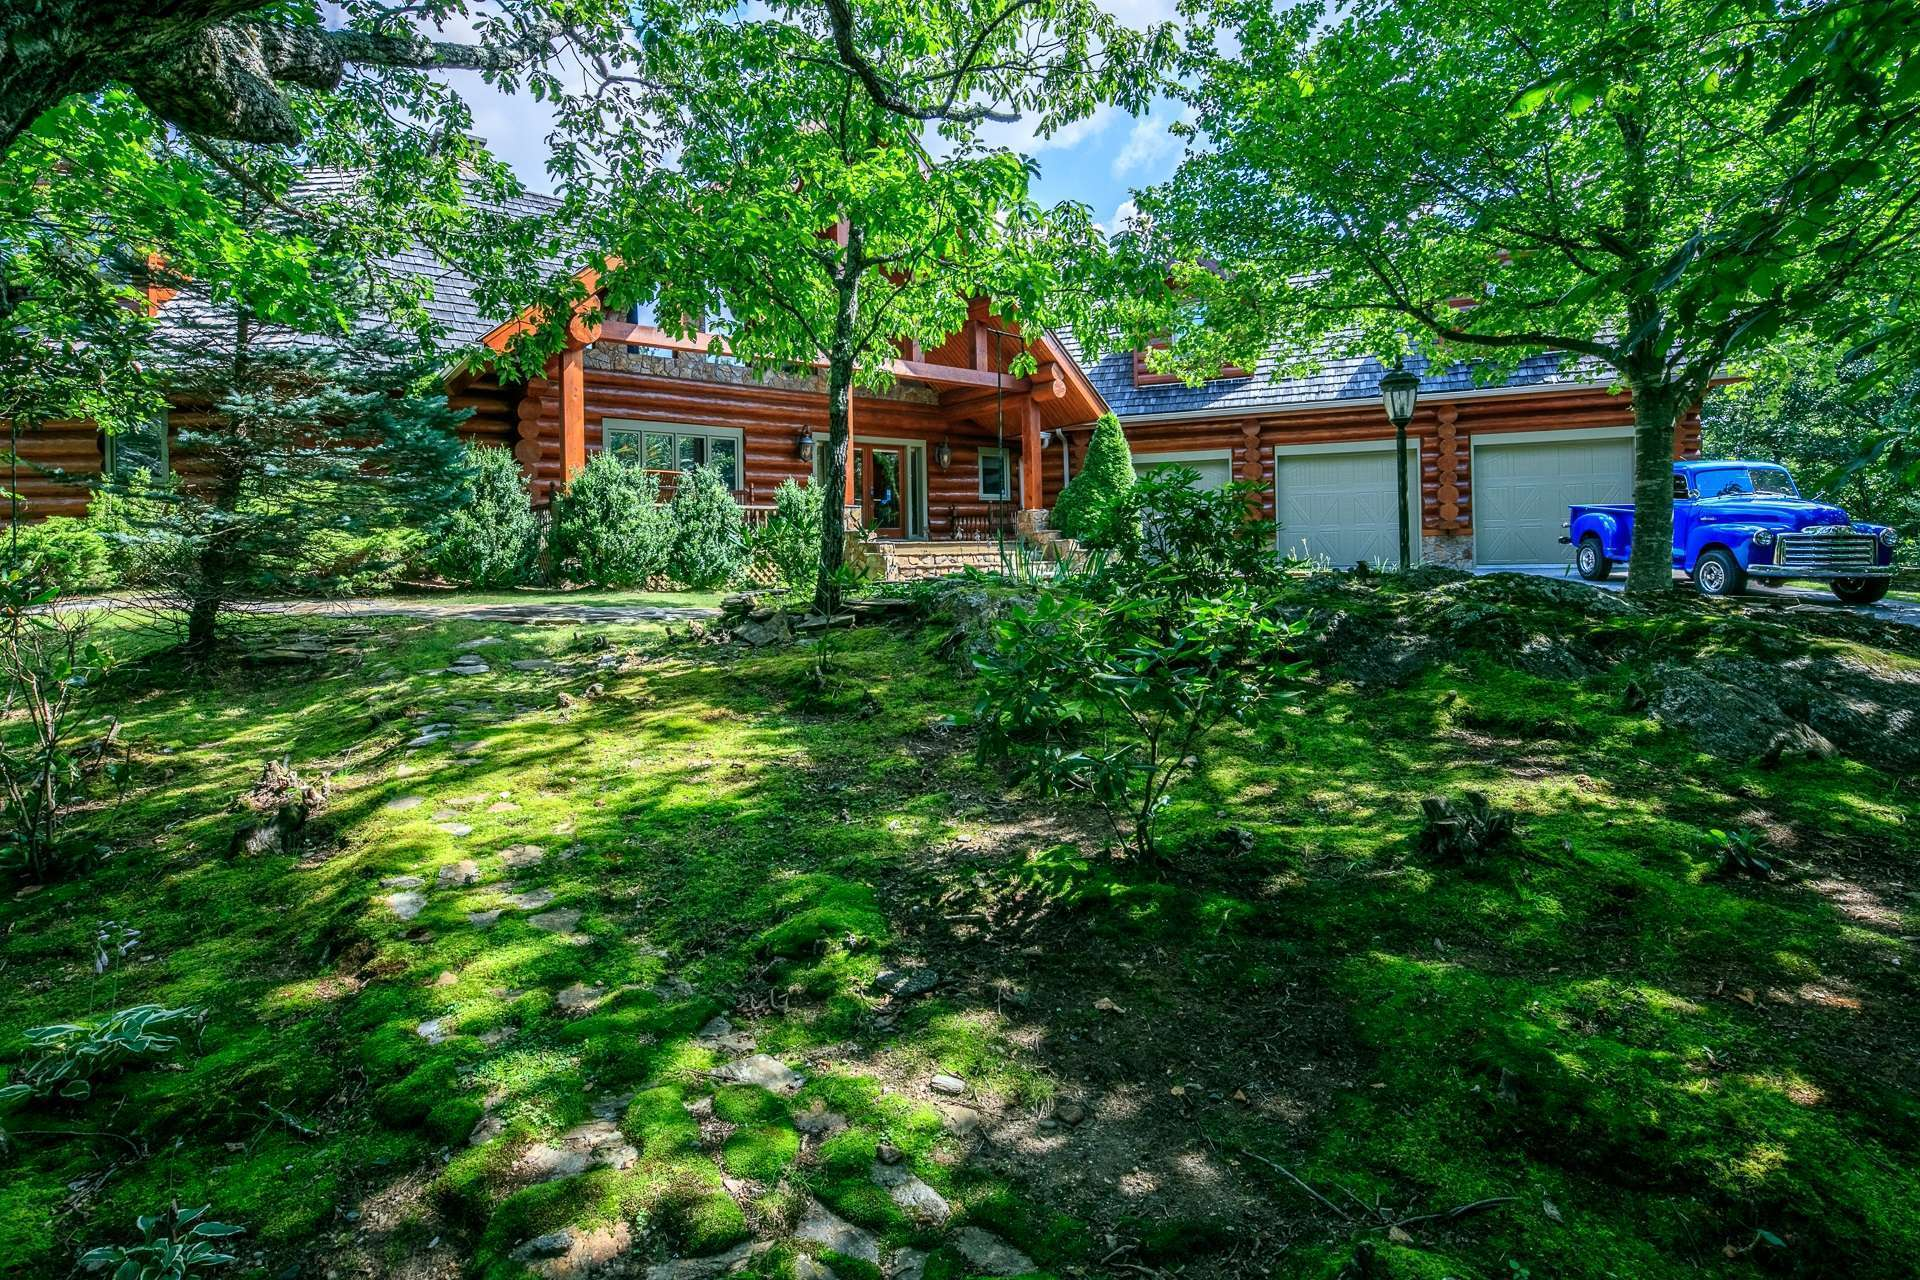 Majestically sited on a naturally forested 19.06 acre setting in the Todd area of Southern Ashe County, this log home offers fabulous curb appeal and plenty of parking space including a three car garage.